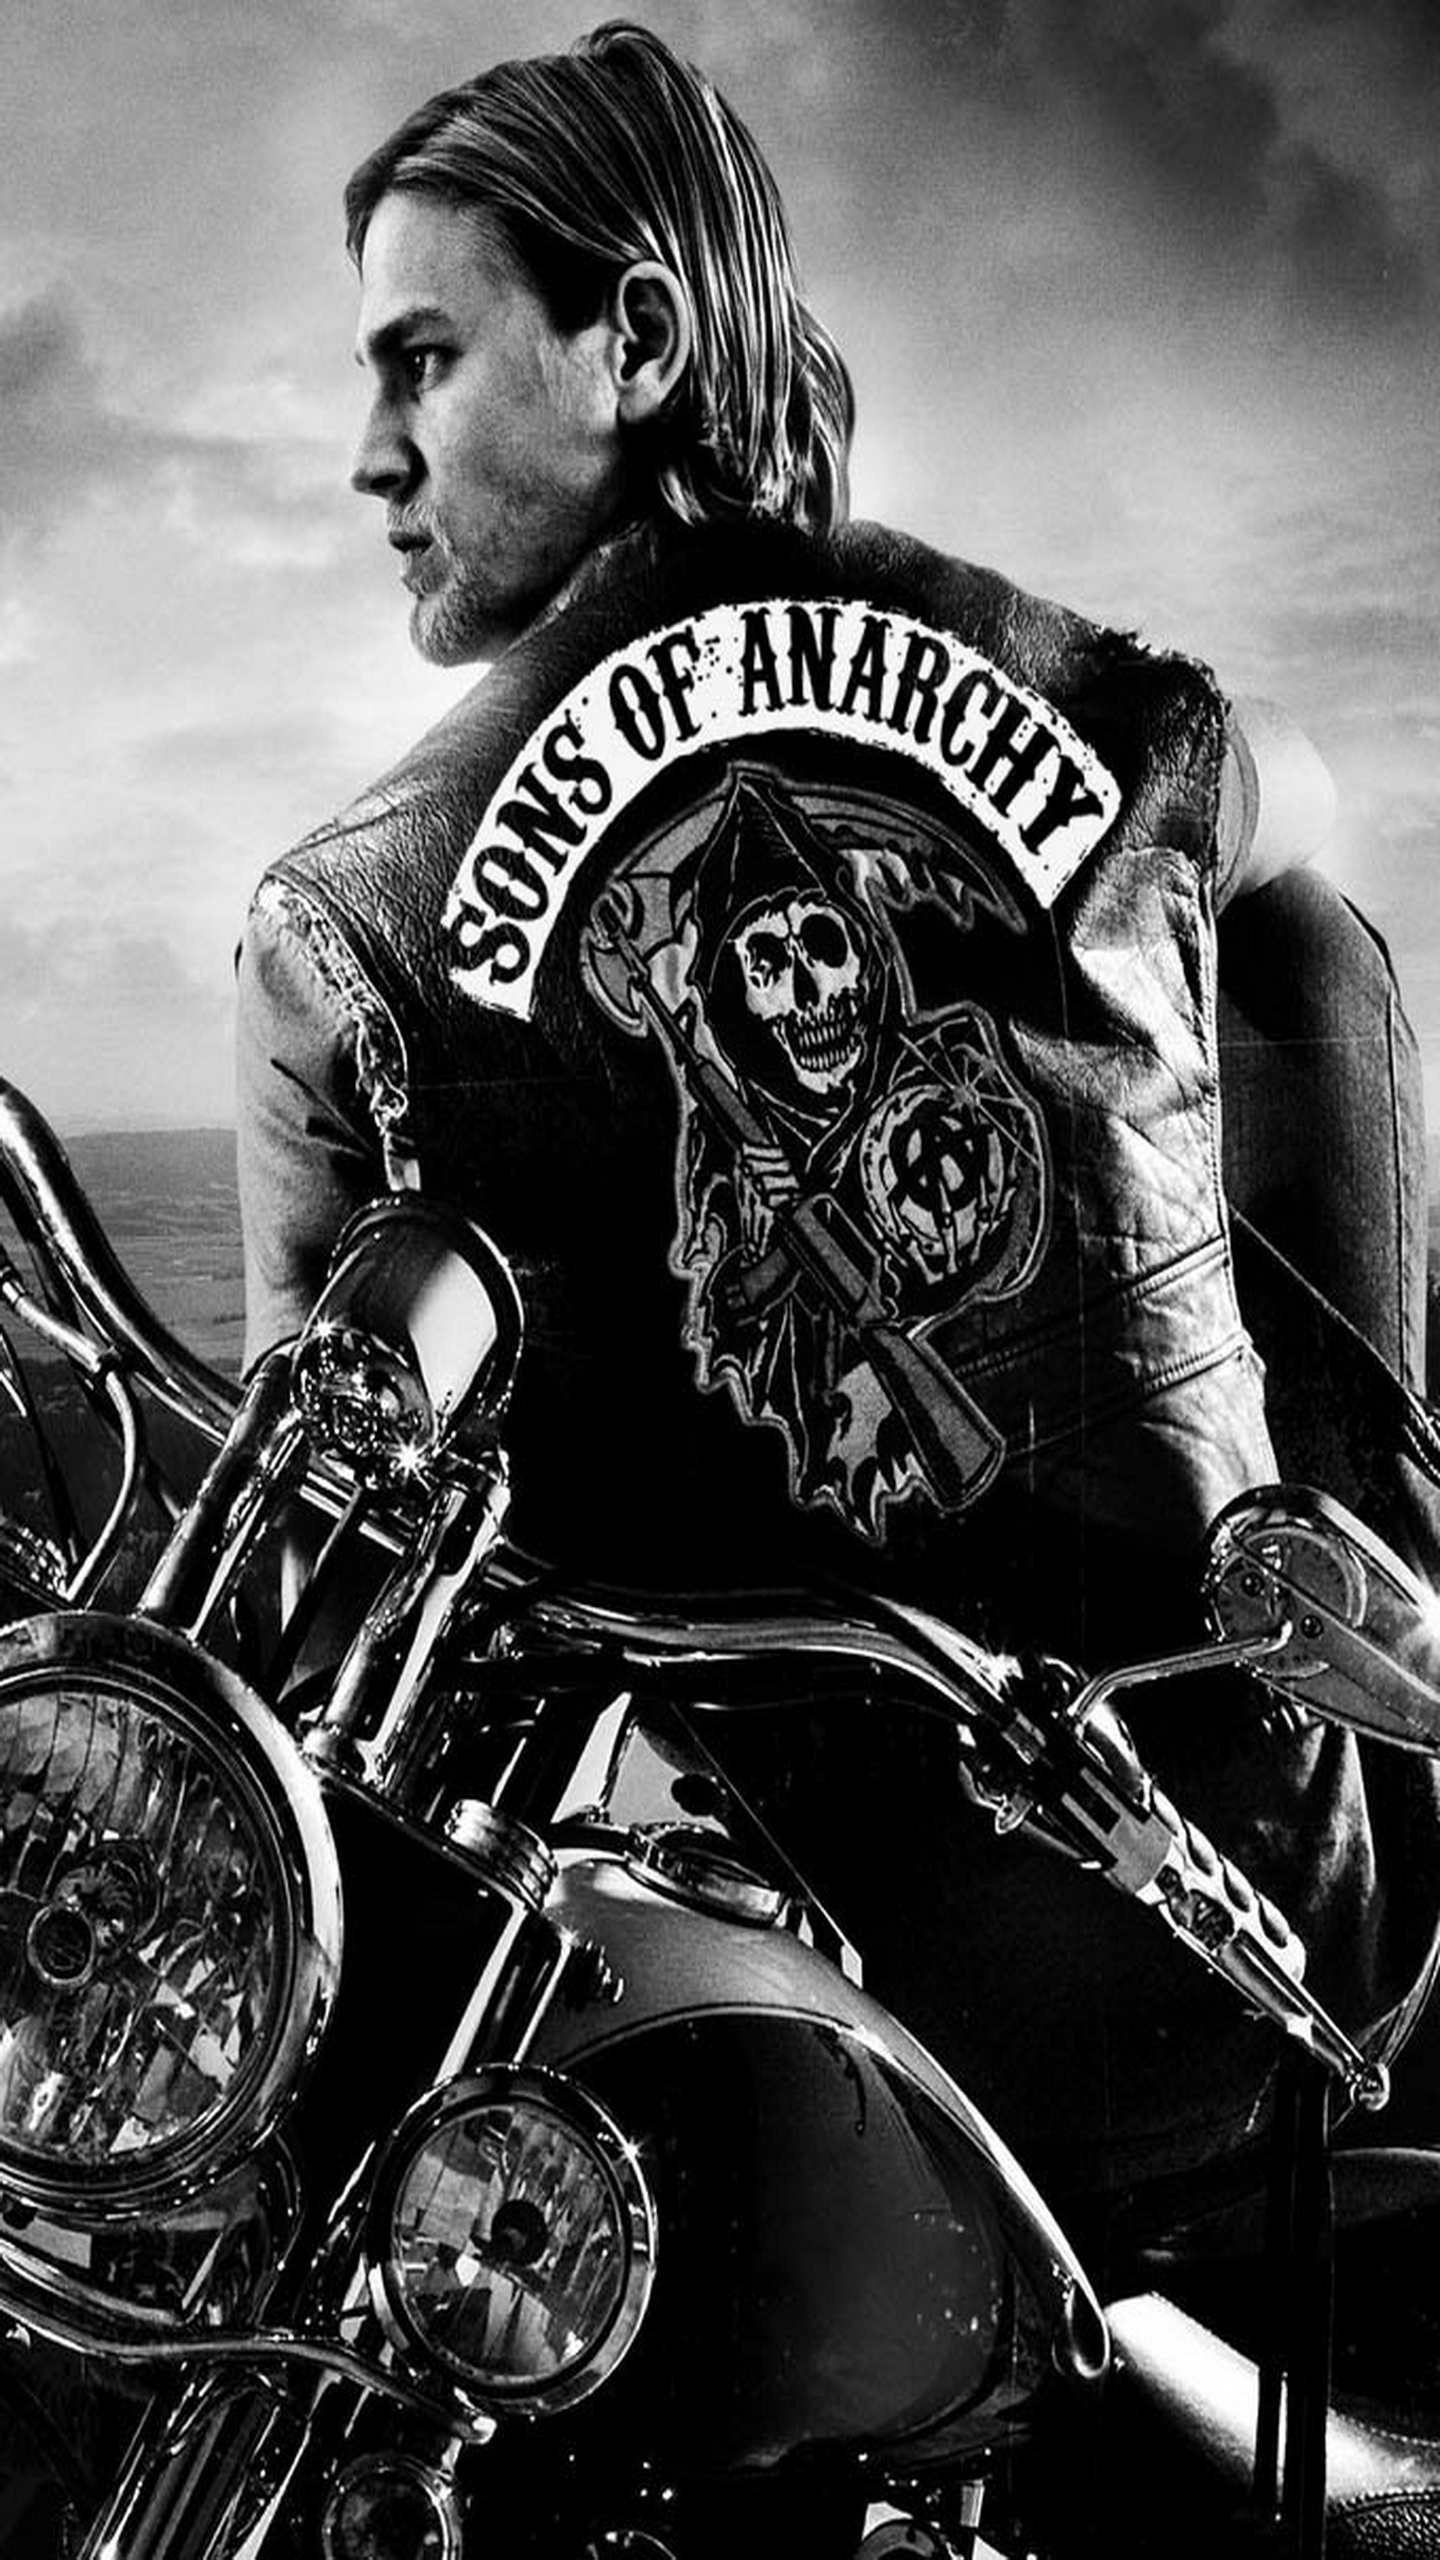 [45+] Sons of Anarchy HD Wallpapers on WallpaperSafari